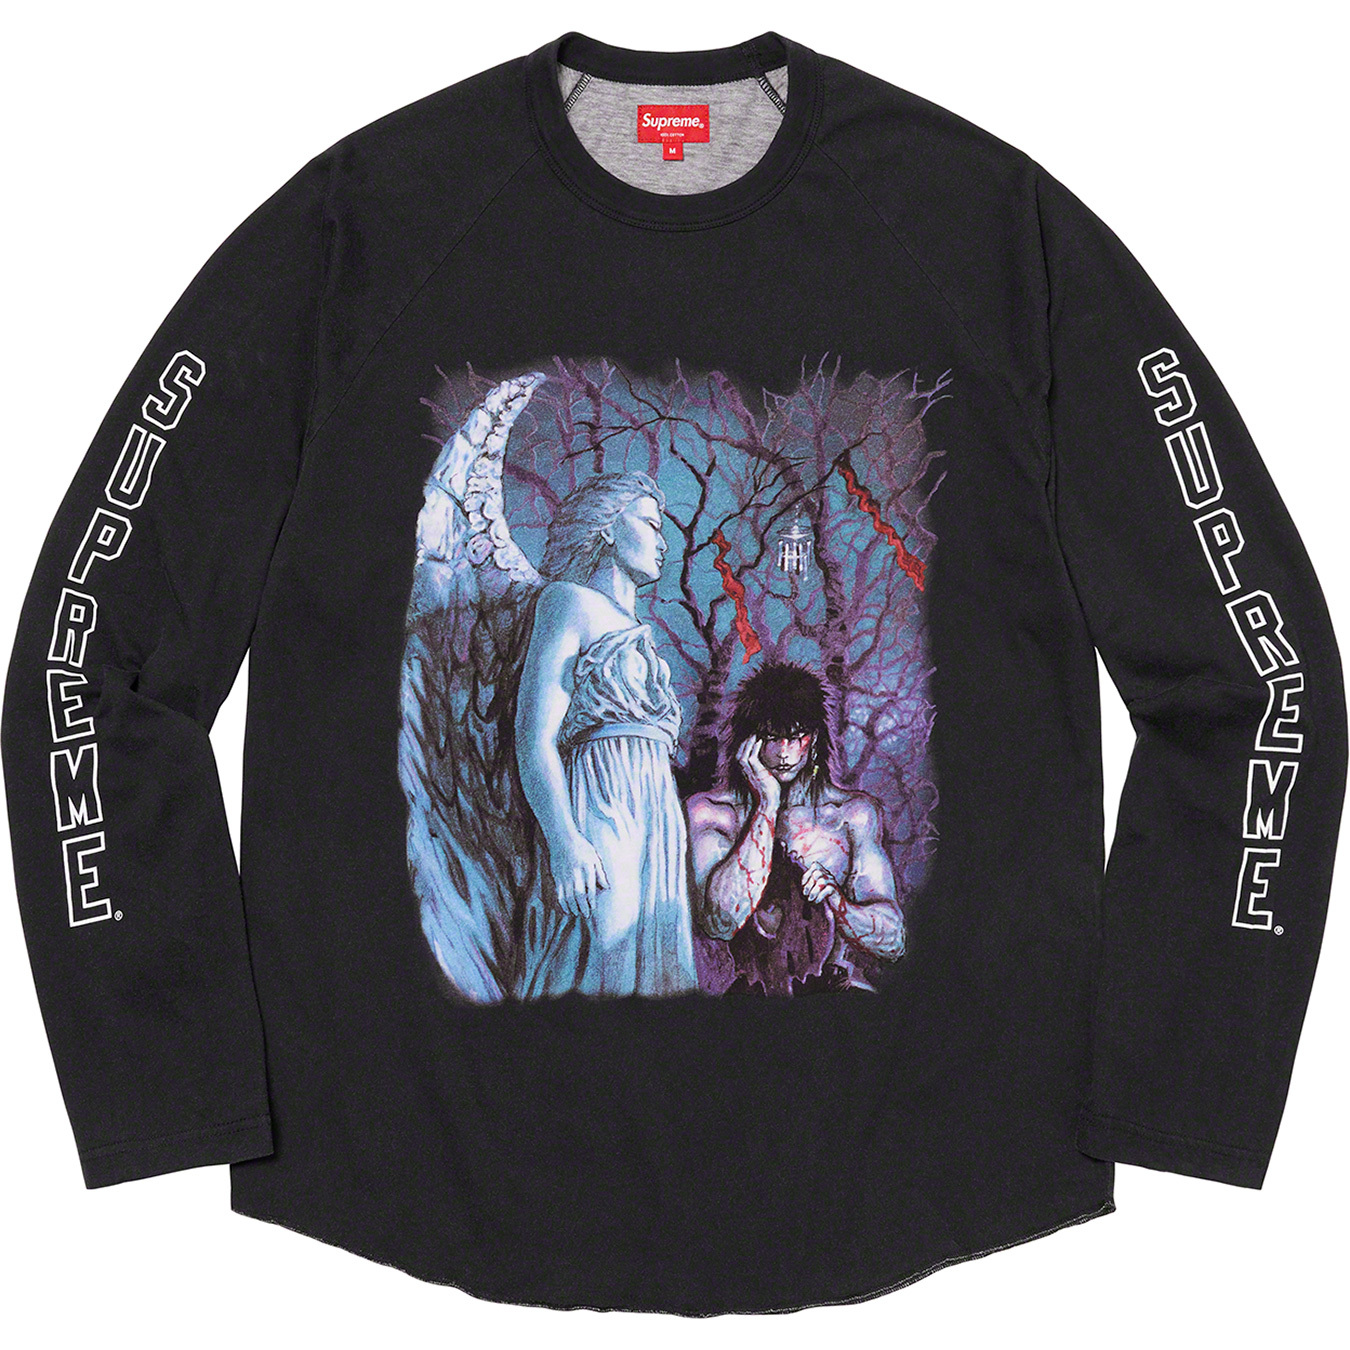 supreme-the-crow-21aw-21fw-collaboration-release-20210918-week4-raglan-l-s-top